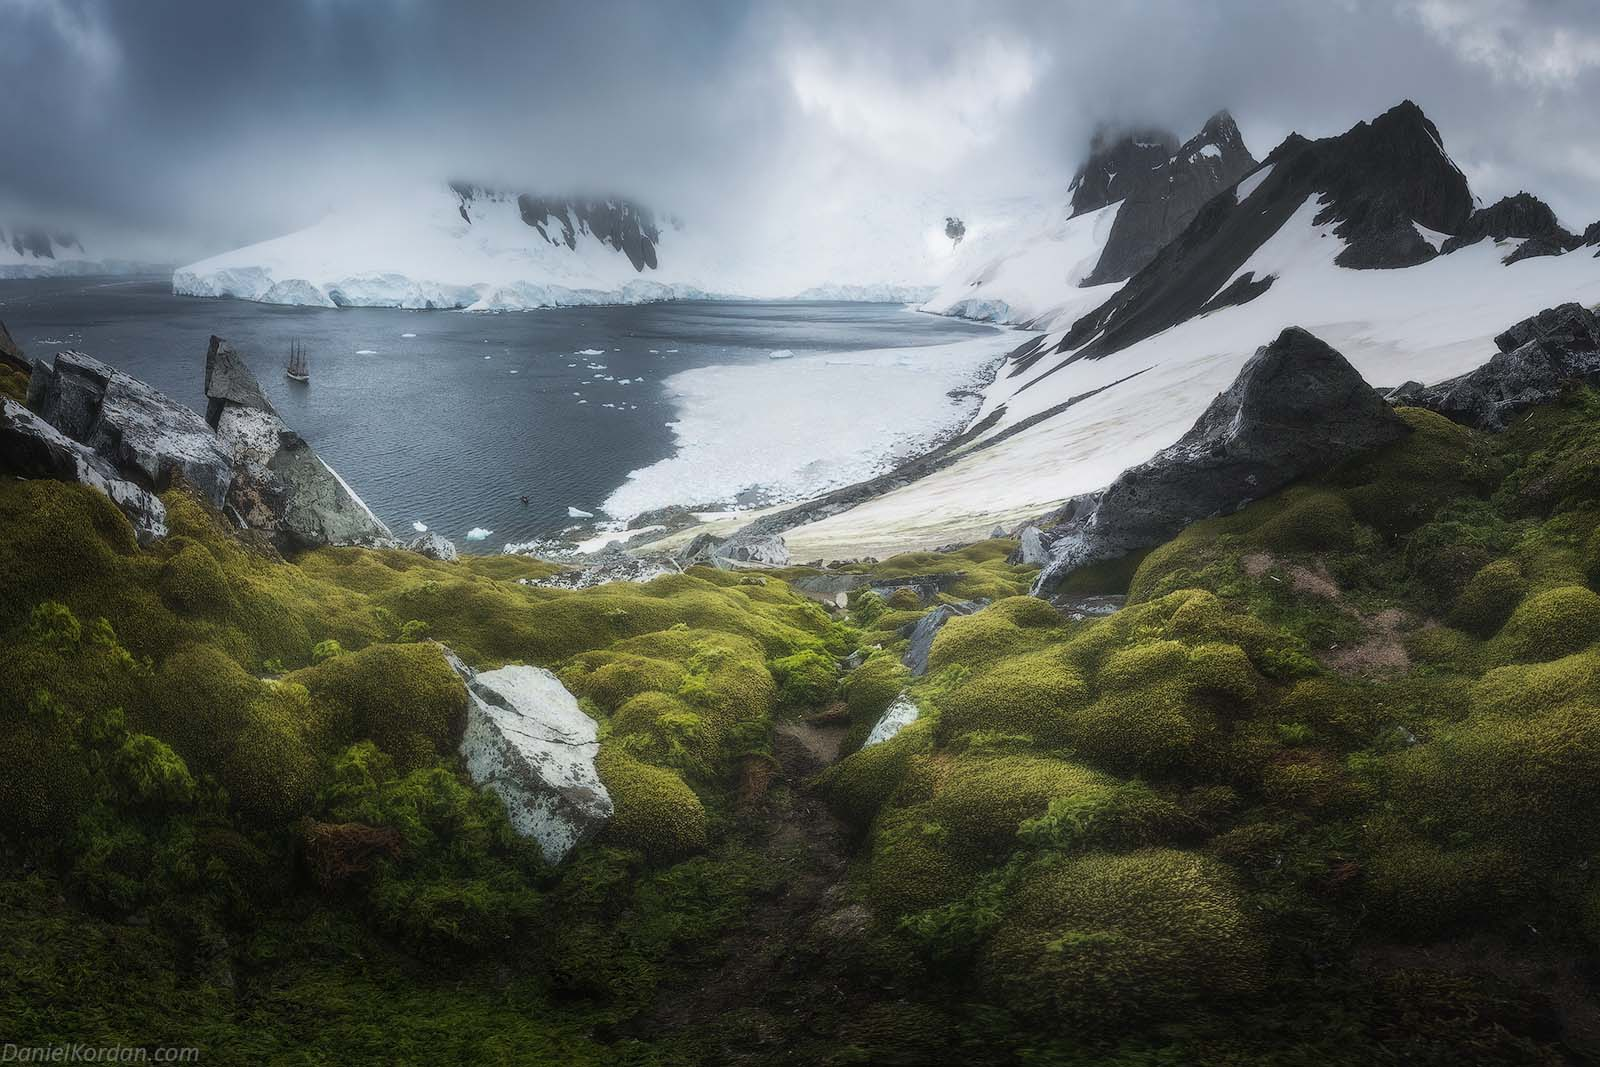 22 Day Antarctica Photography Expedition on Bark Europa - day 8